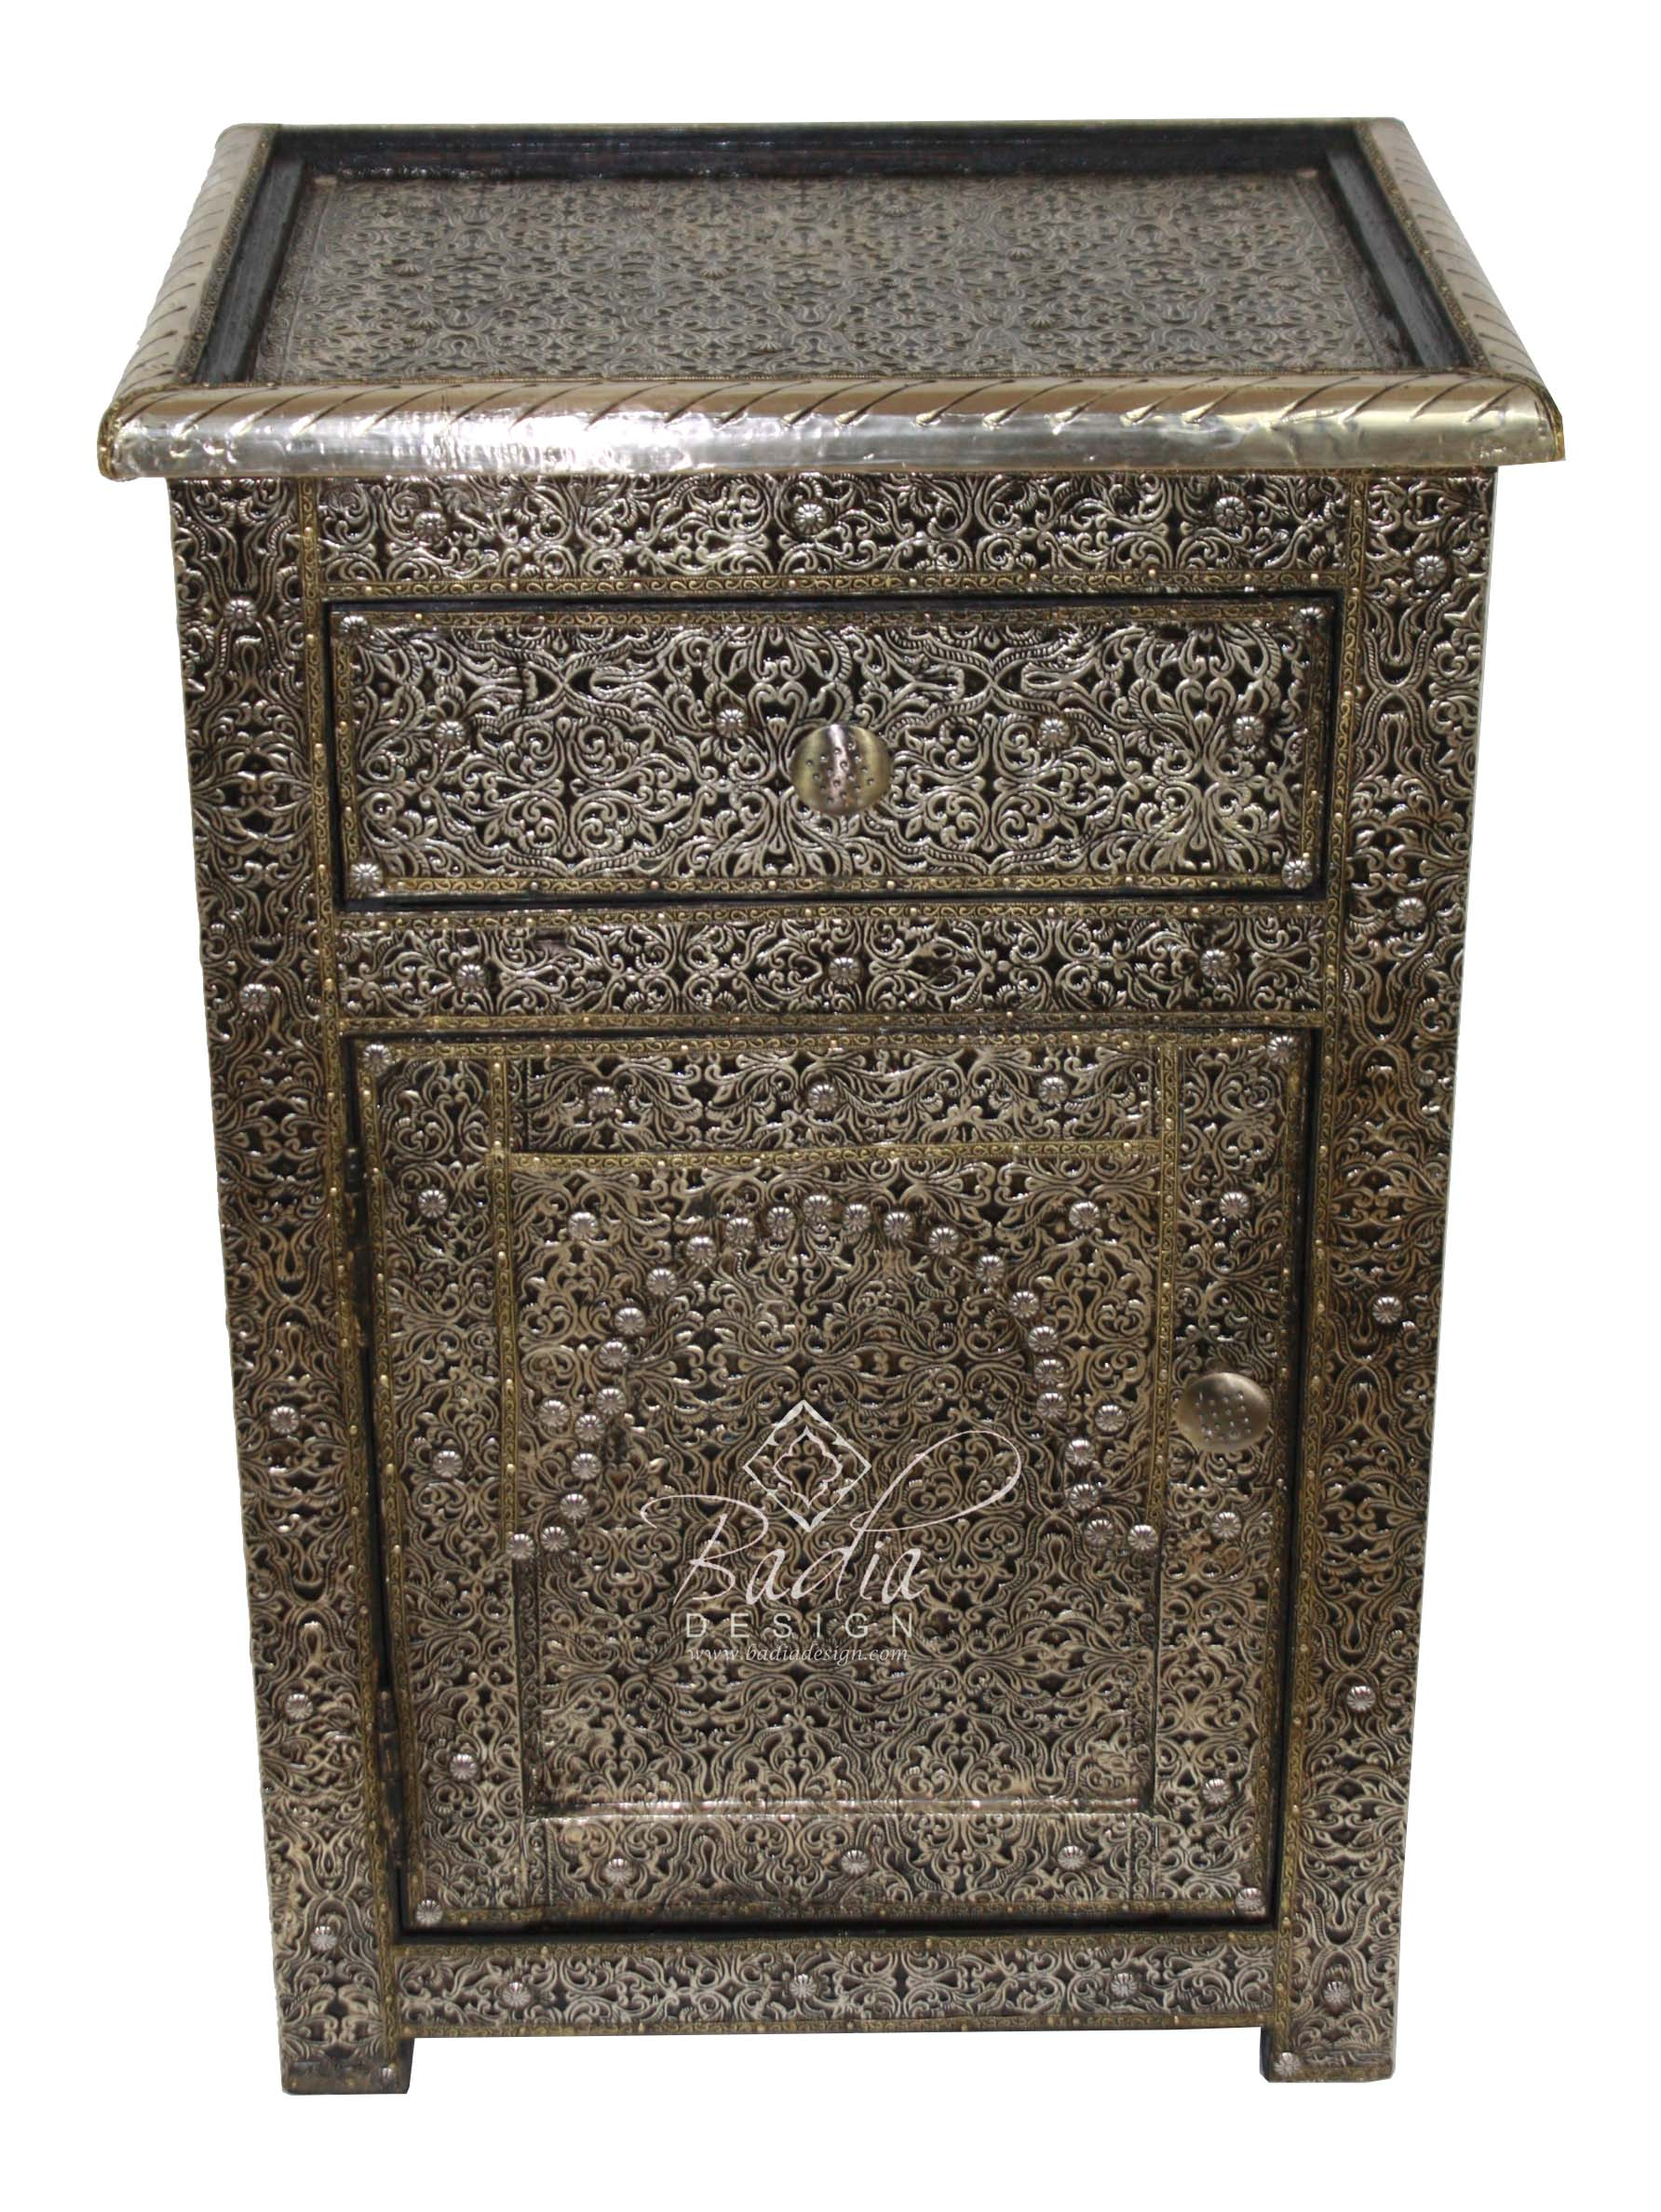 moroccan-silver-nickel-nightstand-with-glass-top-nk-ca047-1.jpg